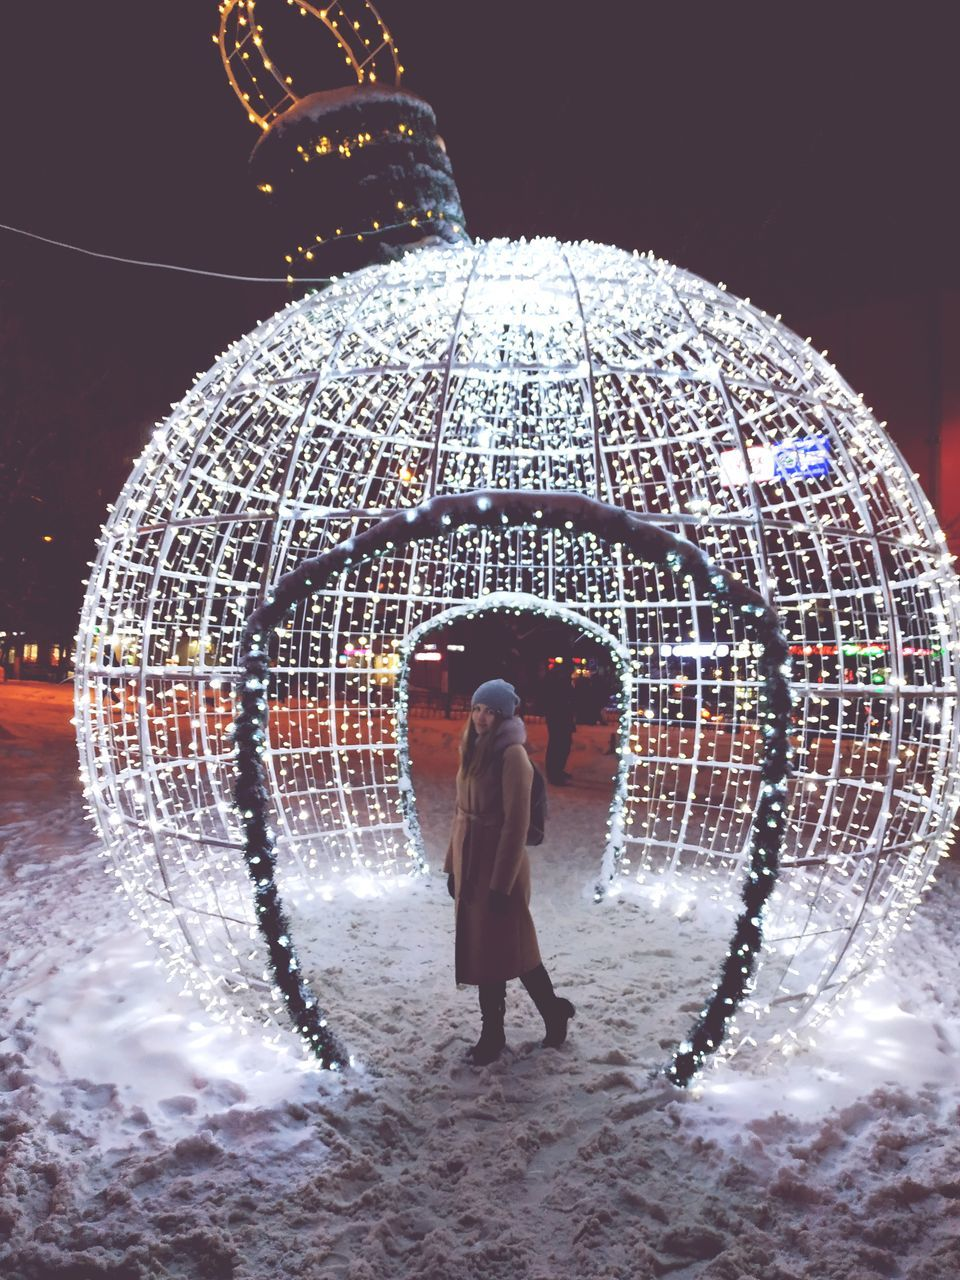 rear view, real people, standing, architecture, full length, people, lifestyles, illuminated, water, leisure activity, motion, men, women, adult, nature, built structure, night, decoration, outdoors